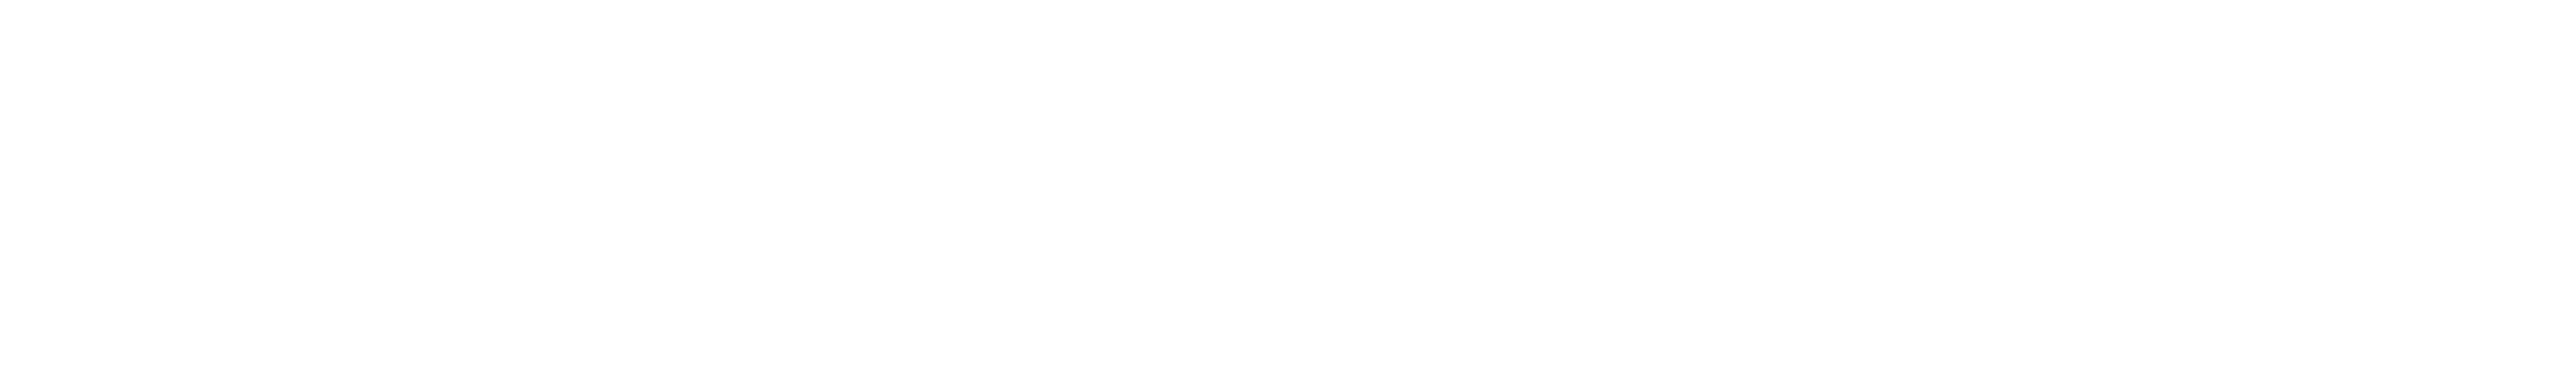 icepedition